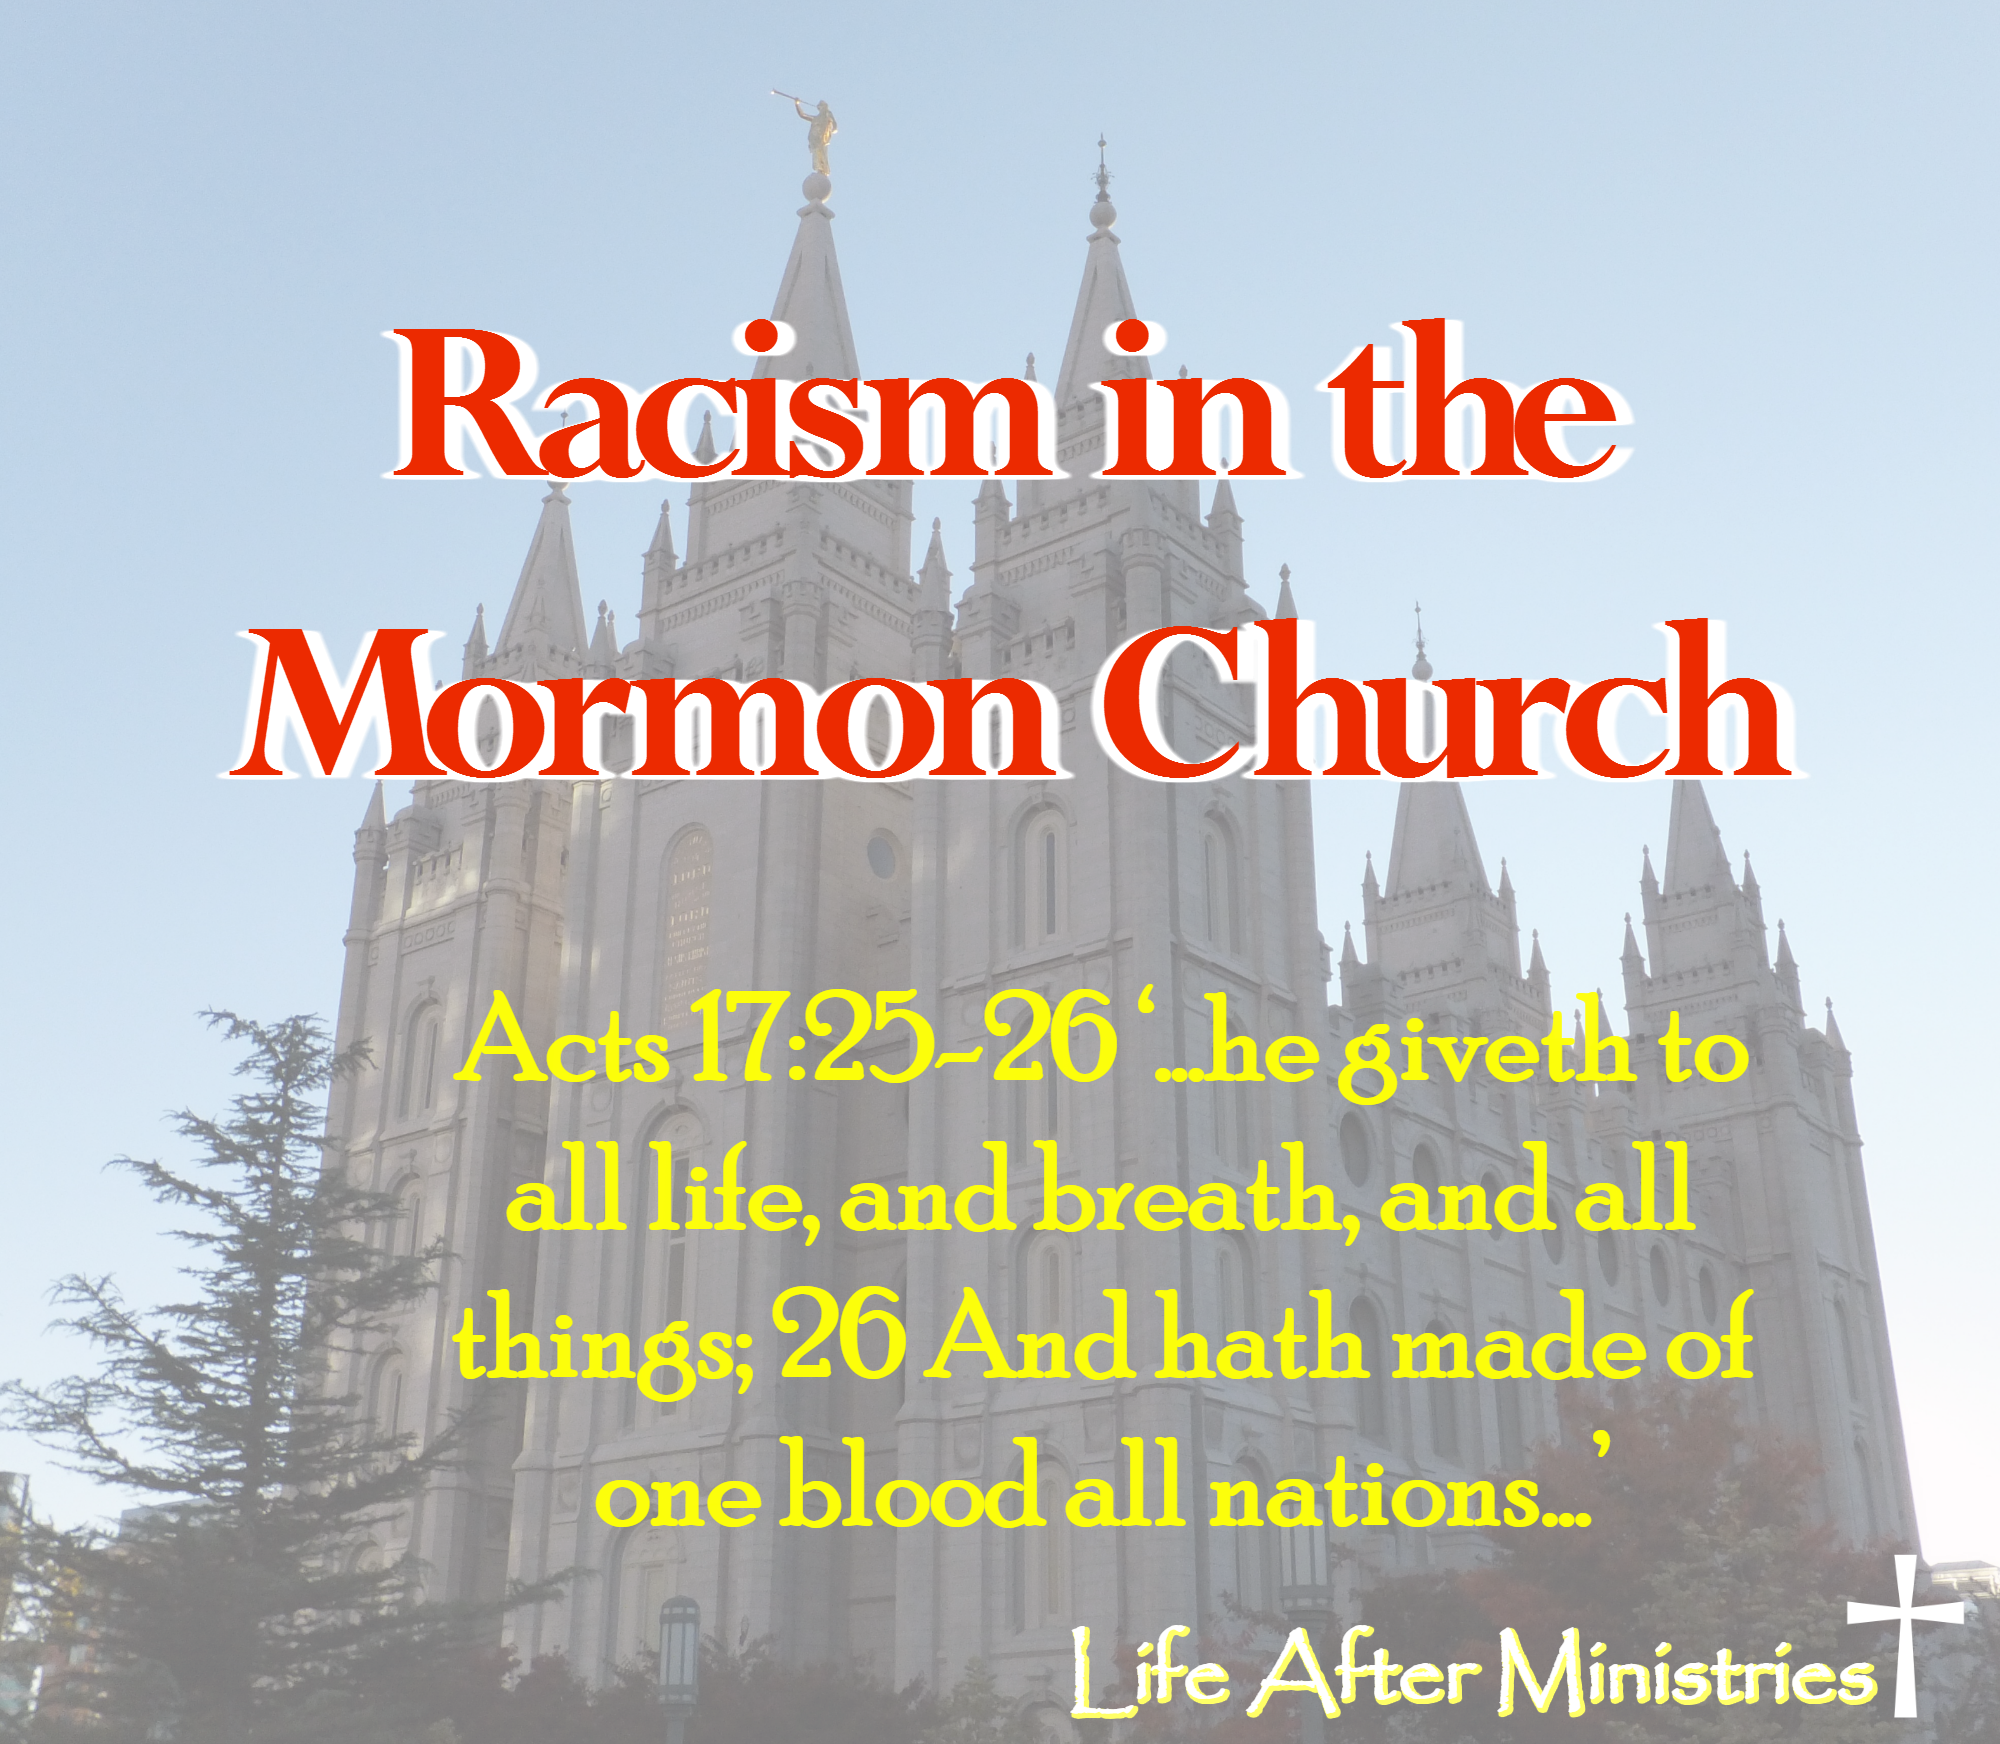 Racist Book Of Mormon Changes Life After Ministries